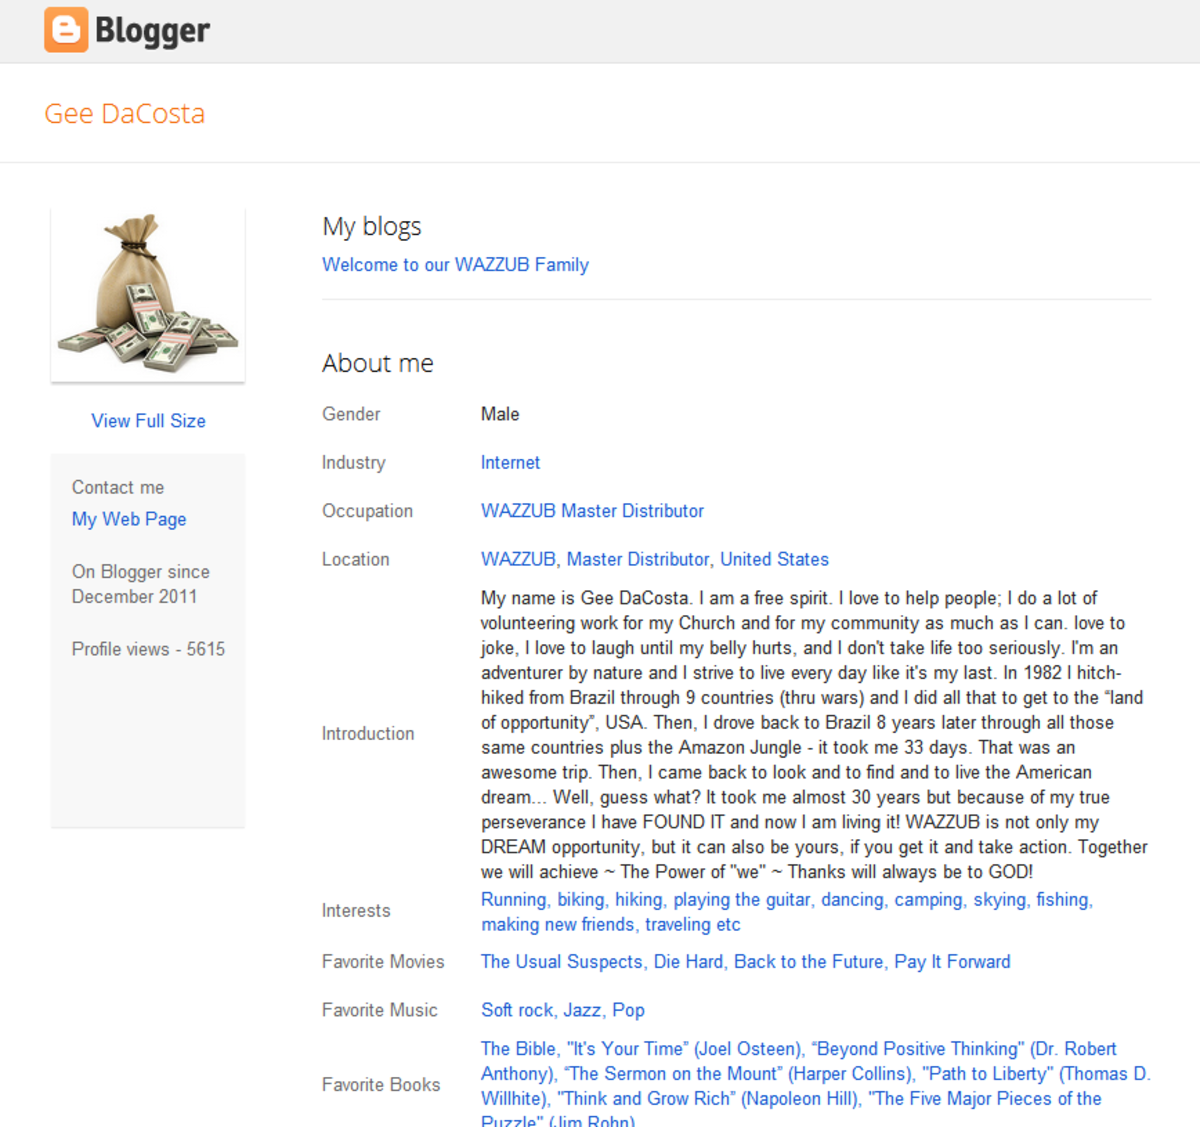 Gee DaCosta's profile on Blogger, part of his heywazzub.blogspot.com